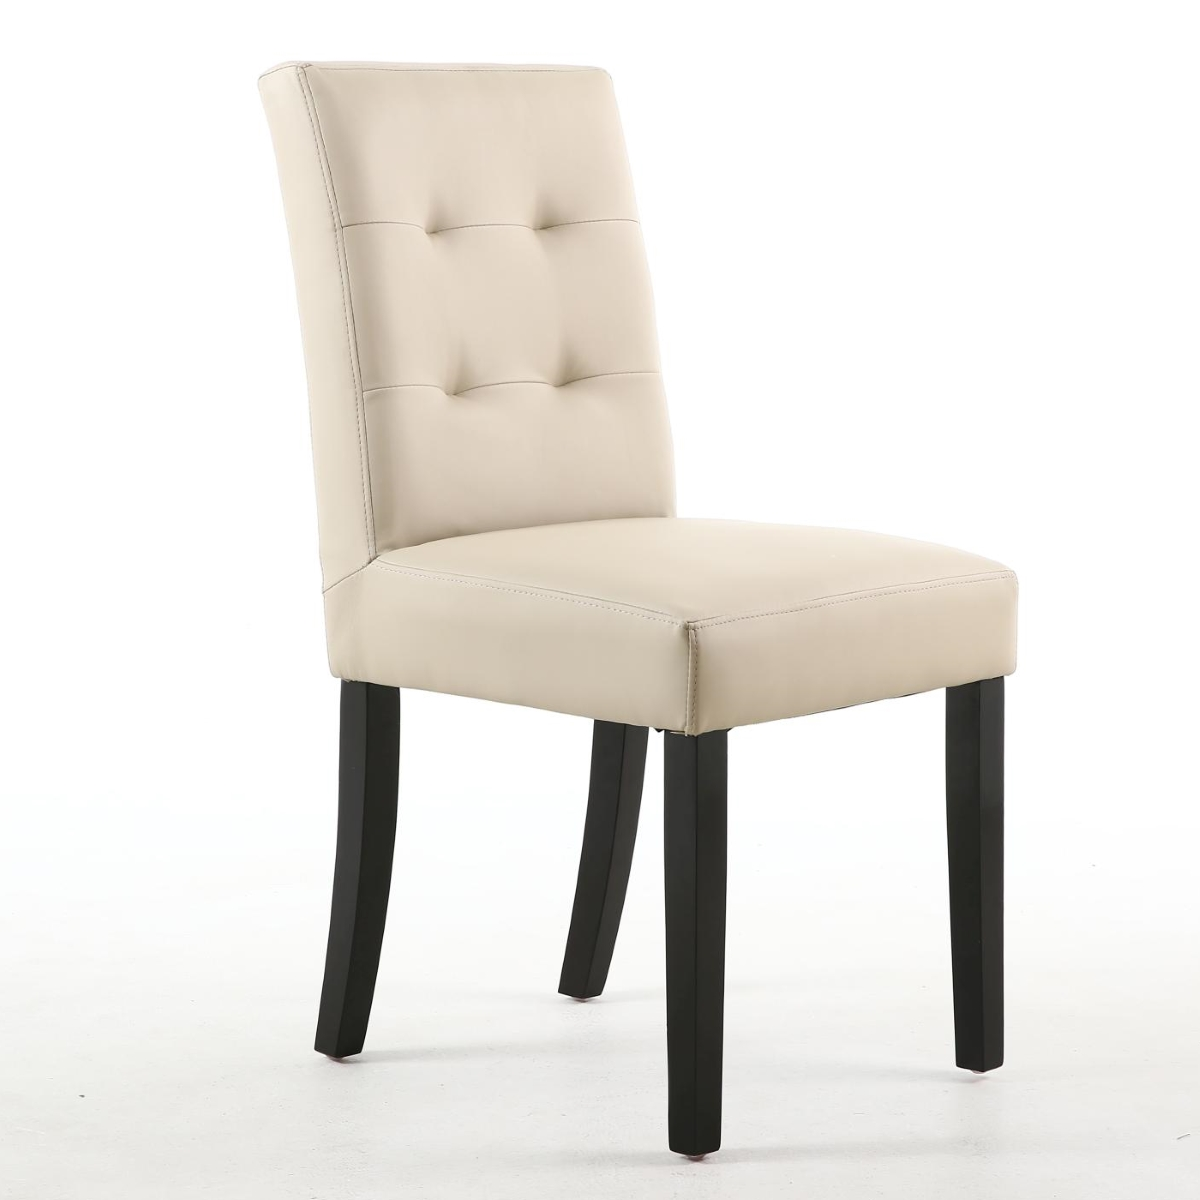 Dining Chairs Shankar Espresso Style 010 Ivory Bonded  : shankarespressodiningchair010 07 13 01 011 1200x1200 from www.121homefurniture.co.uk size 1200 x 1200 jpeg 211kB